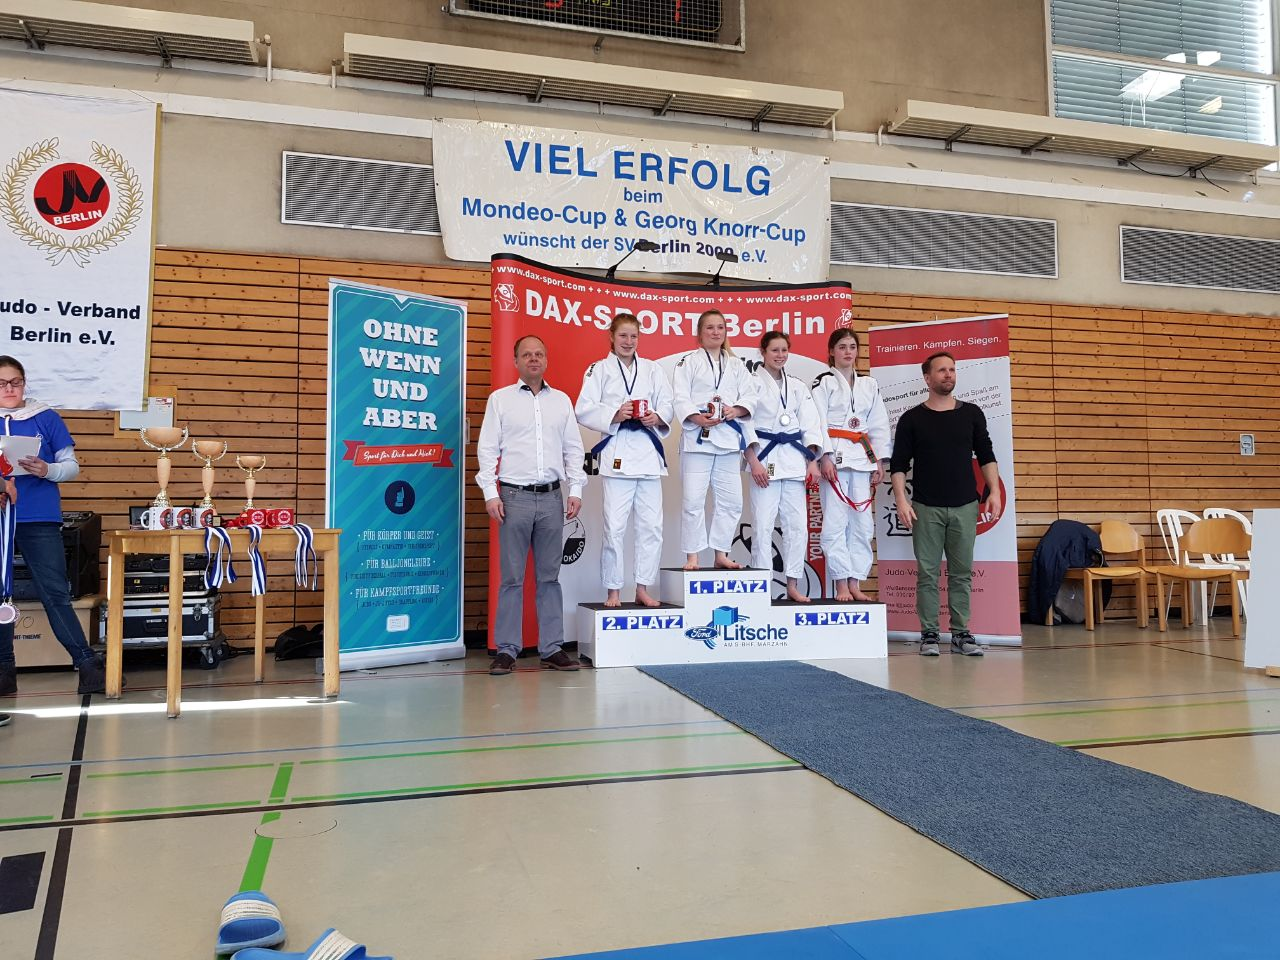 Judo - DJB-Sichtungsturniere U15 in Berlin - 2018-03-18